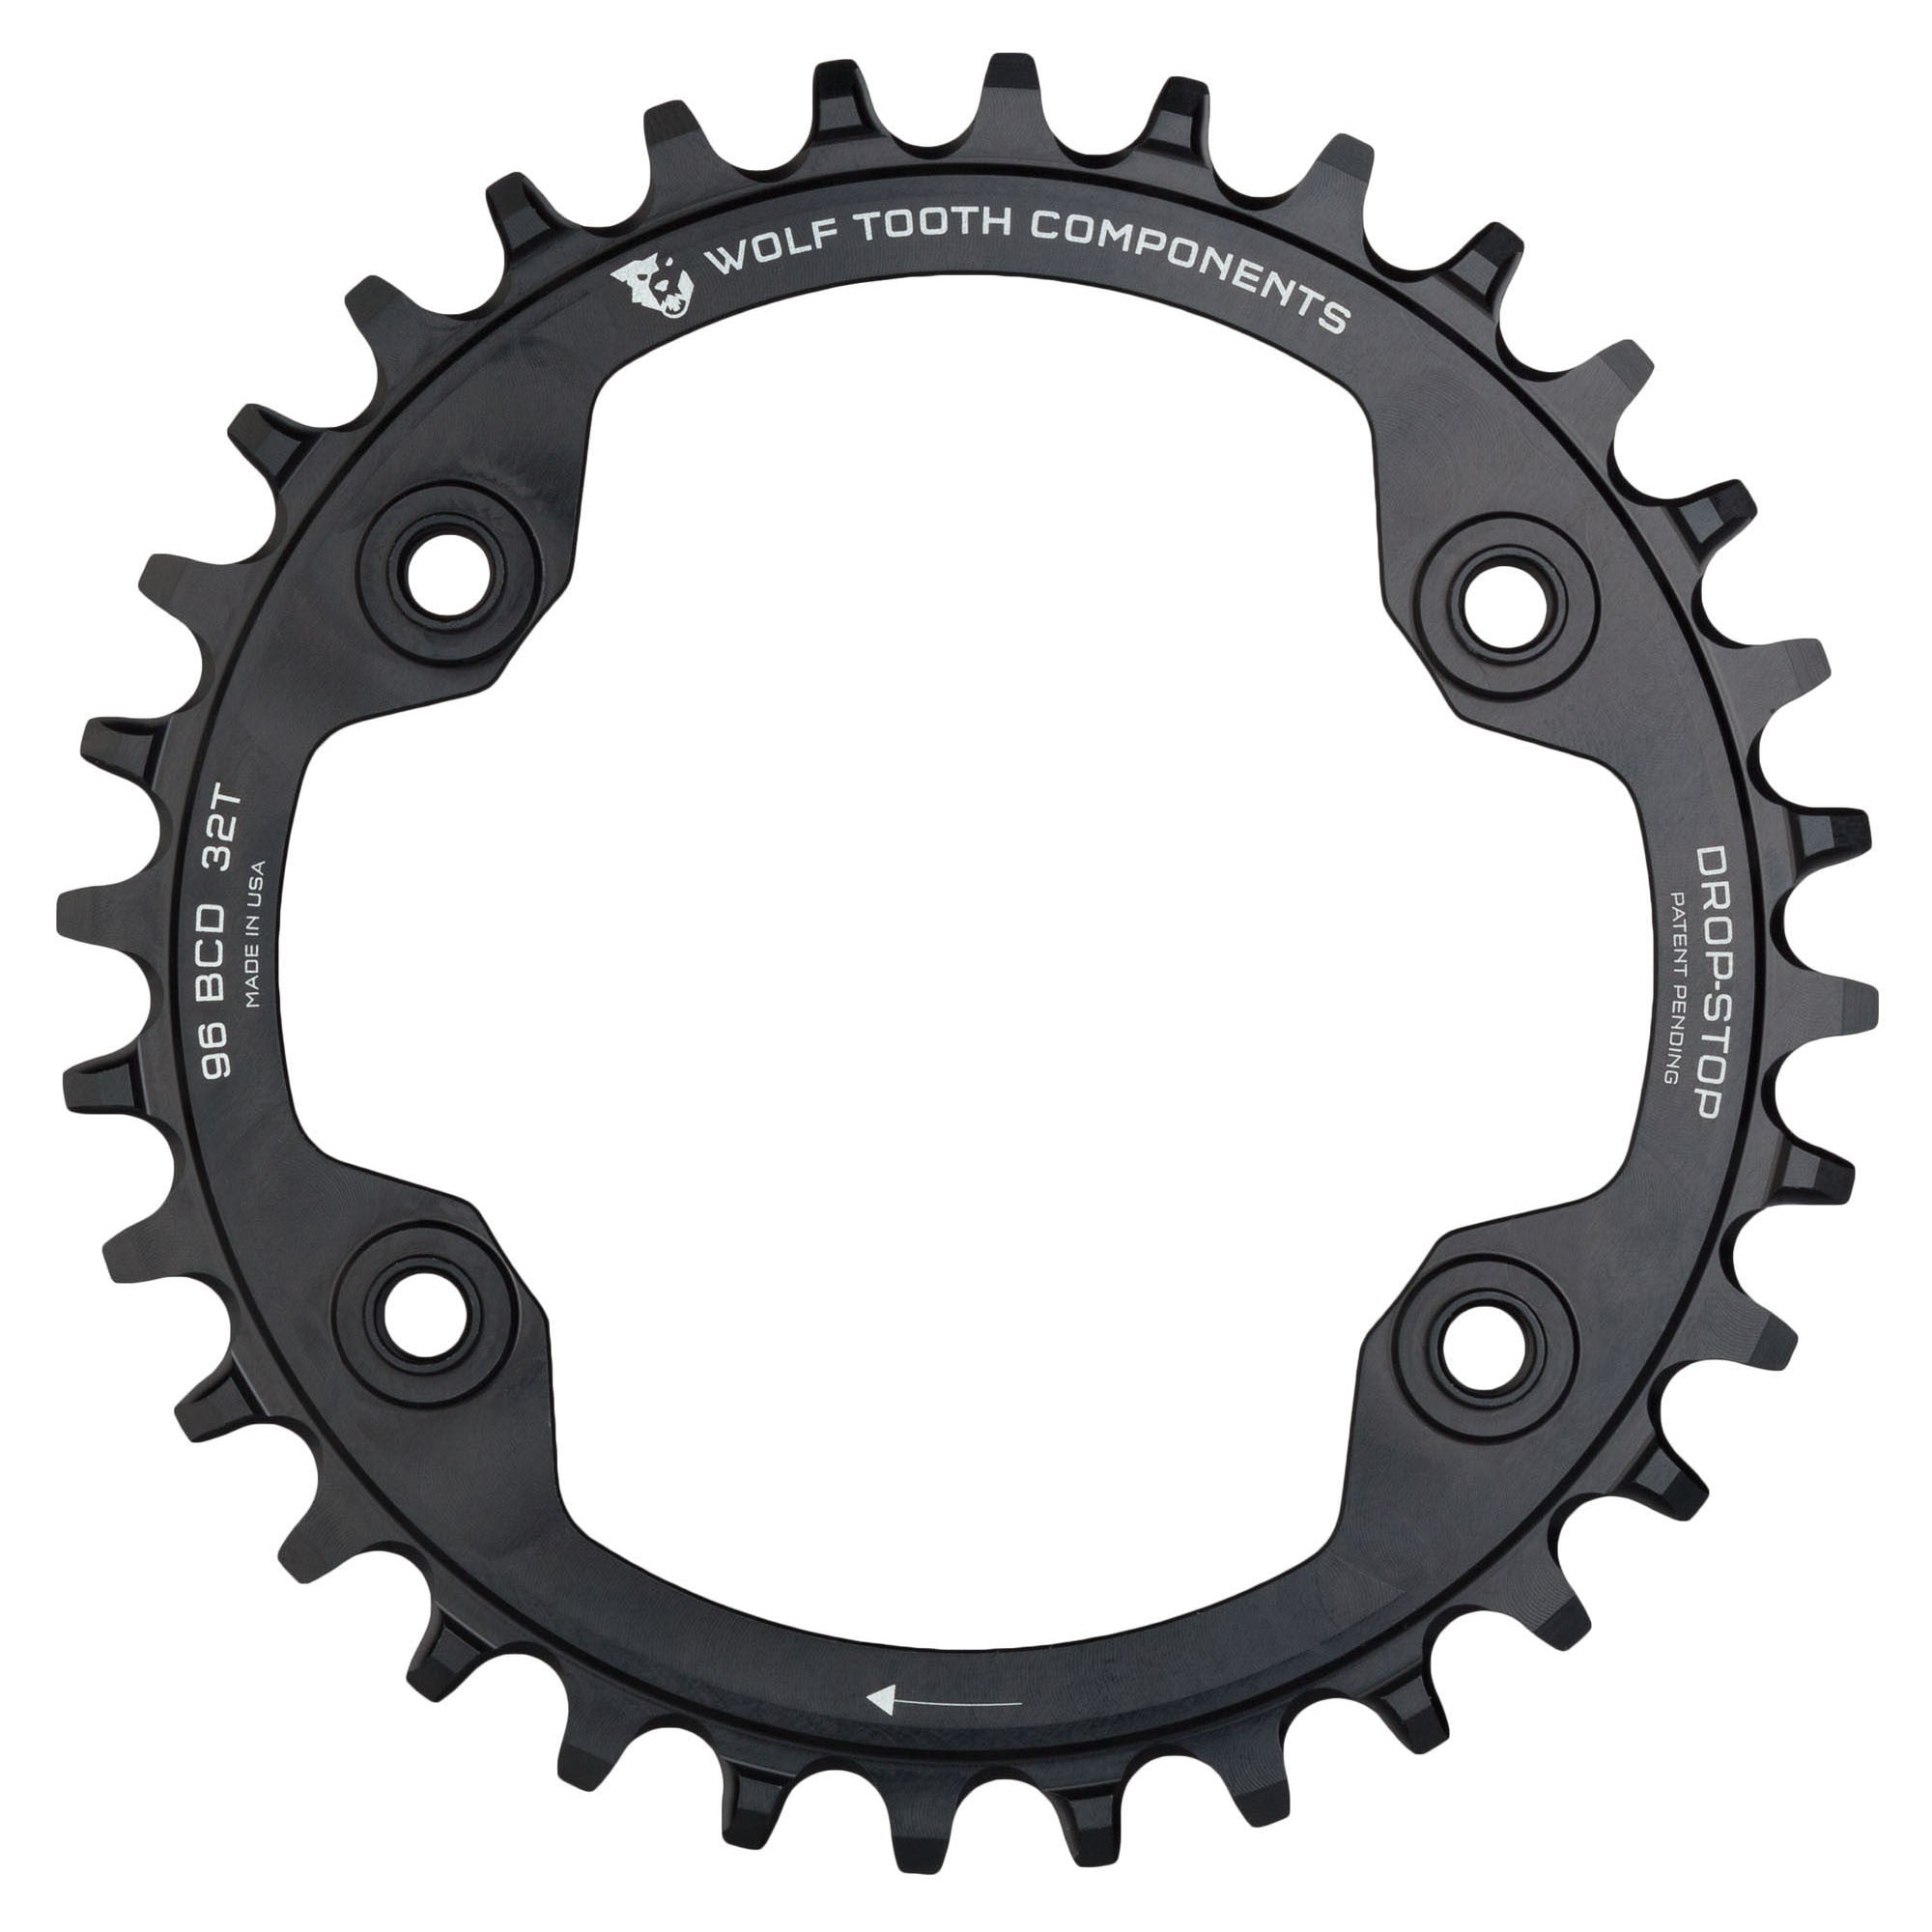 4a88f3bd1c9 96 mm BCD Chainrings for Shimano XTR M9000 and M9020 – Wolf Tooth ...